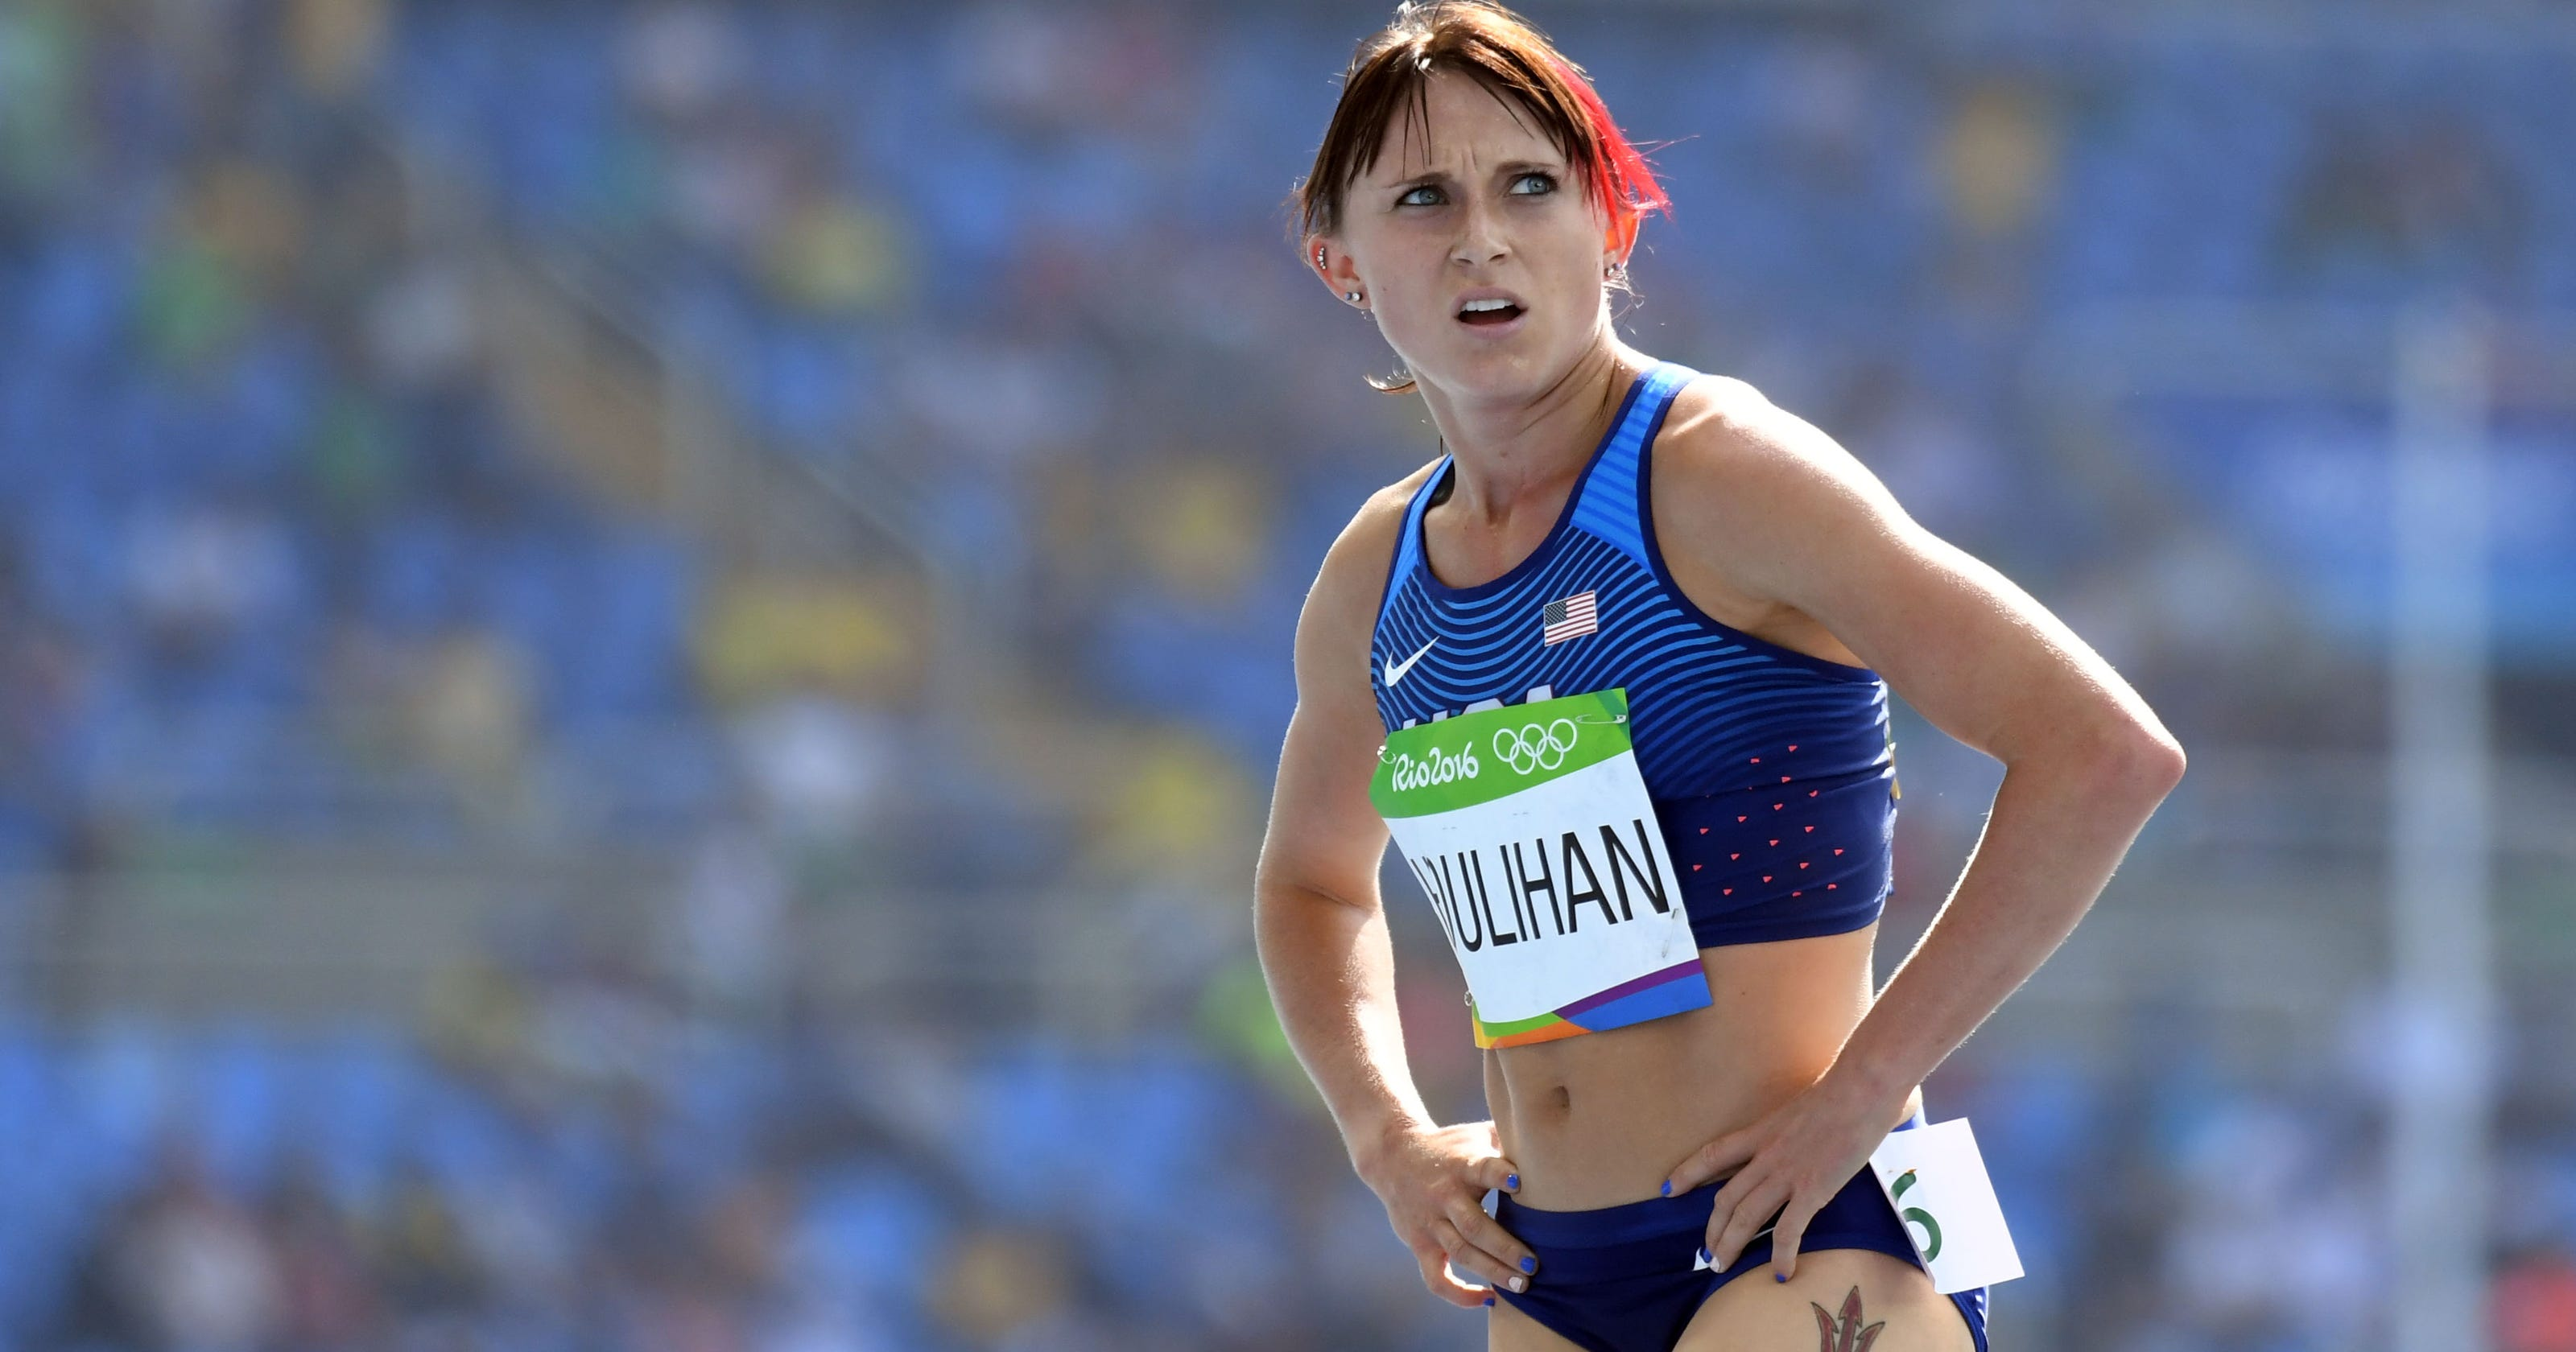 'No one gave it their all more than her': Shelby Houlihan's suspension shocks Iowa's track community